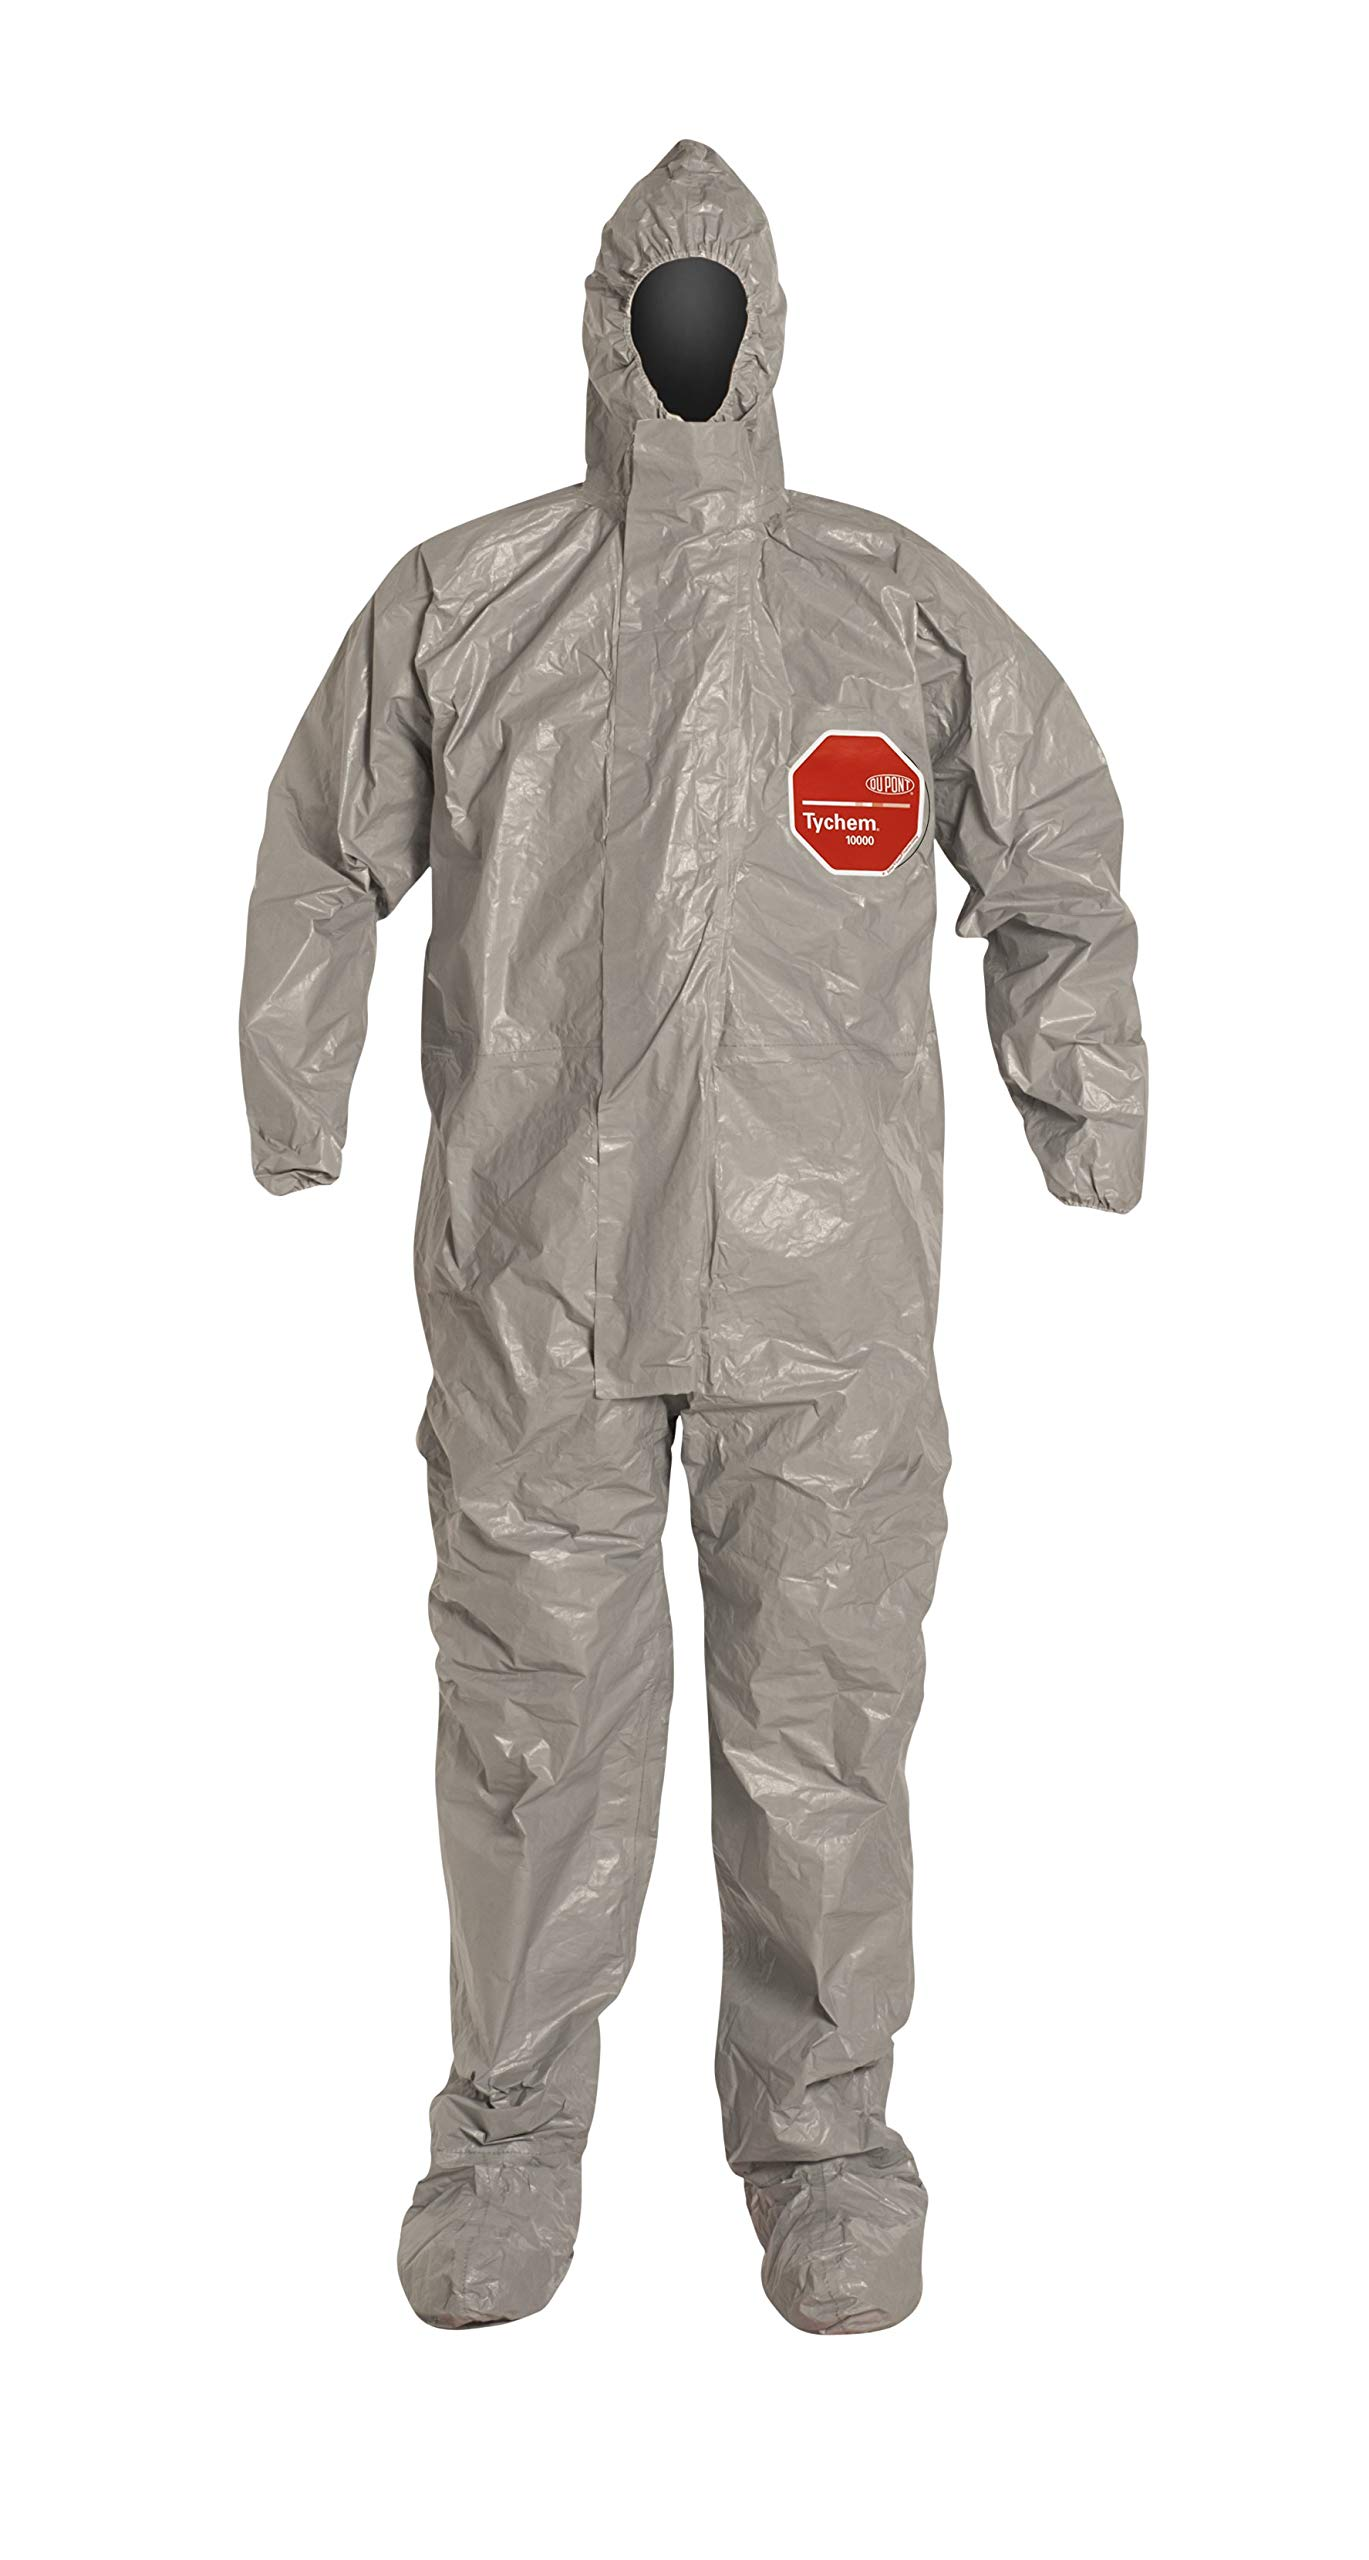 DuPont TF169TGY2X000600 Tychem 6000 Coverall with Boot, Xx-Large, Gray (Pack of 6)